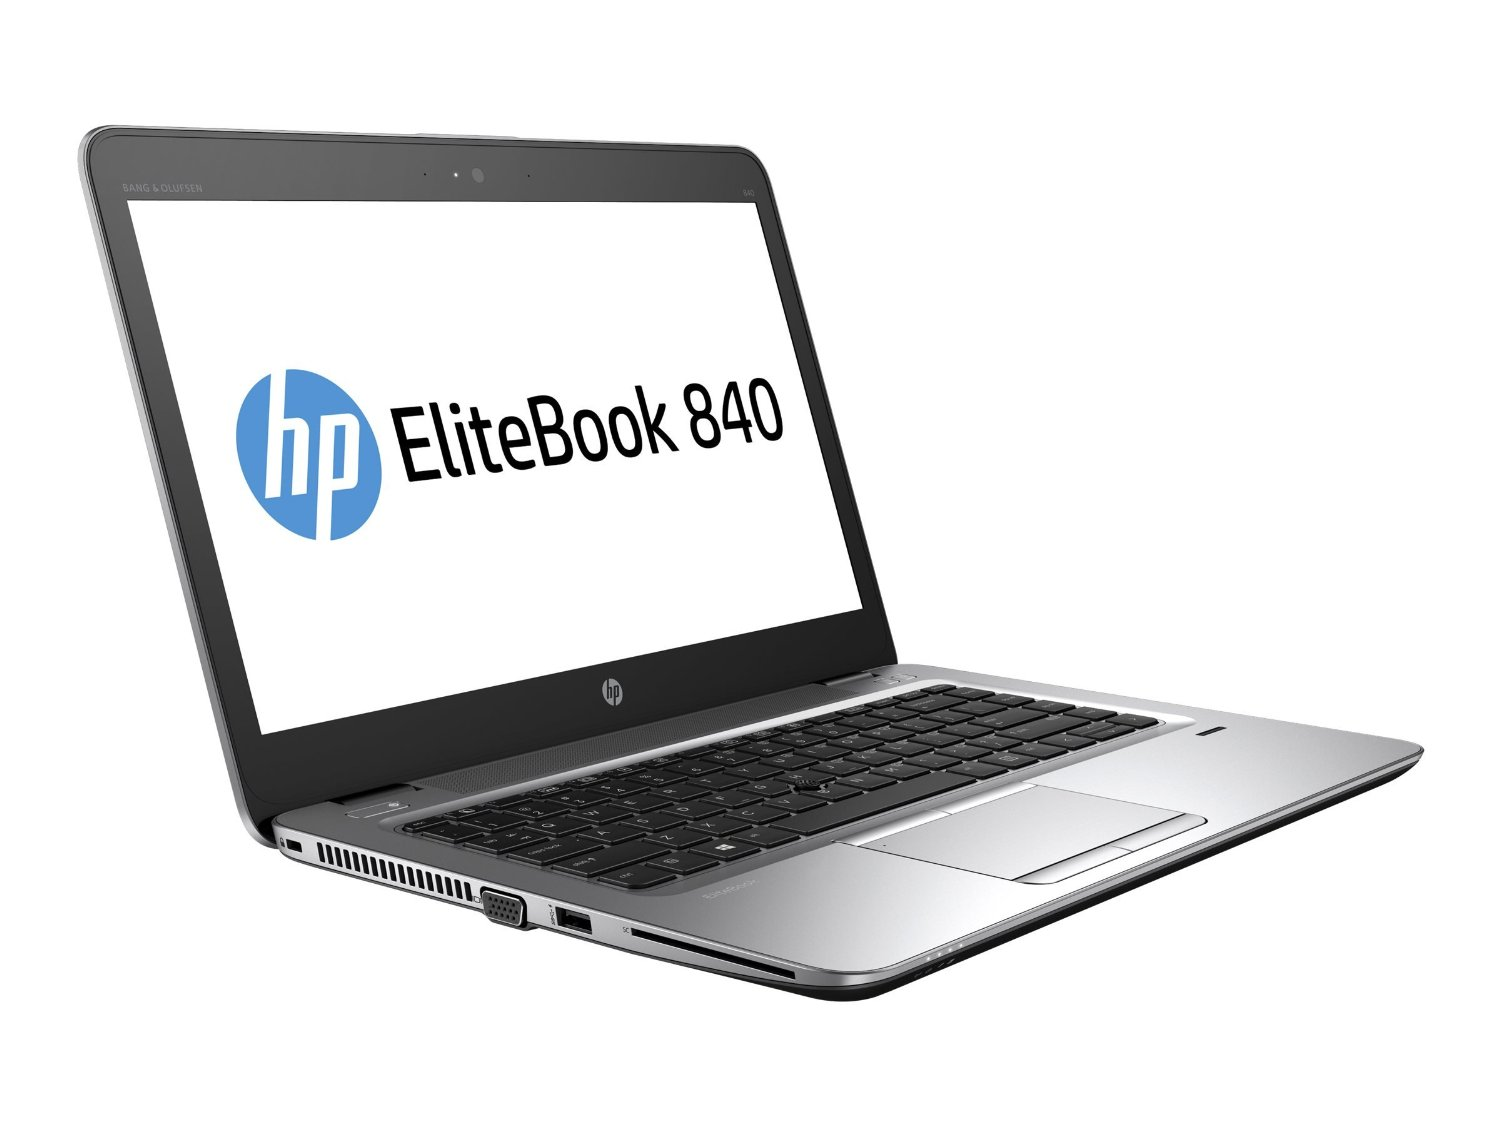 HP Elitebook 840 G3 (i5 6300u)